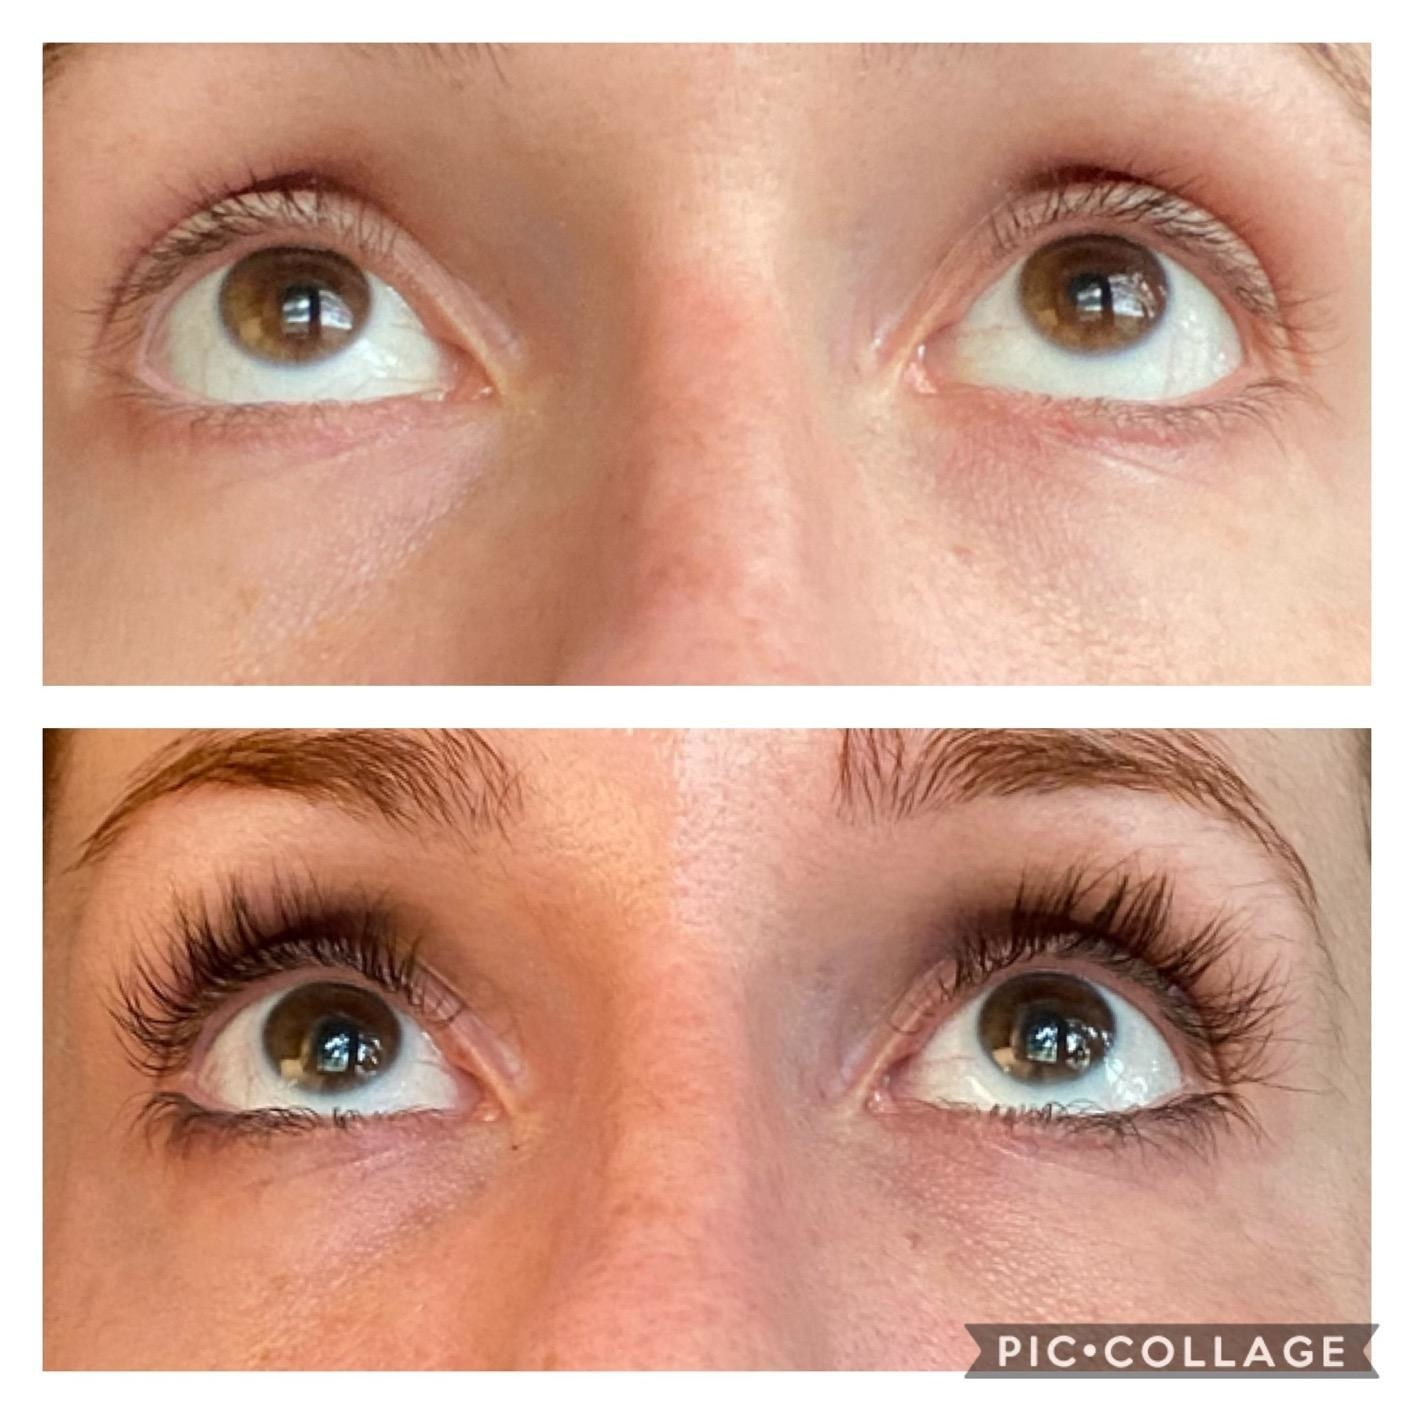 Reviewer's lashes before and after using product